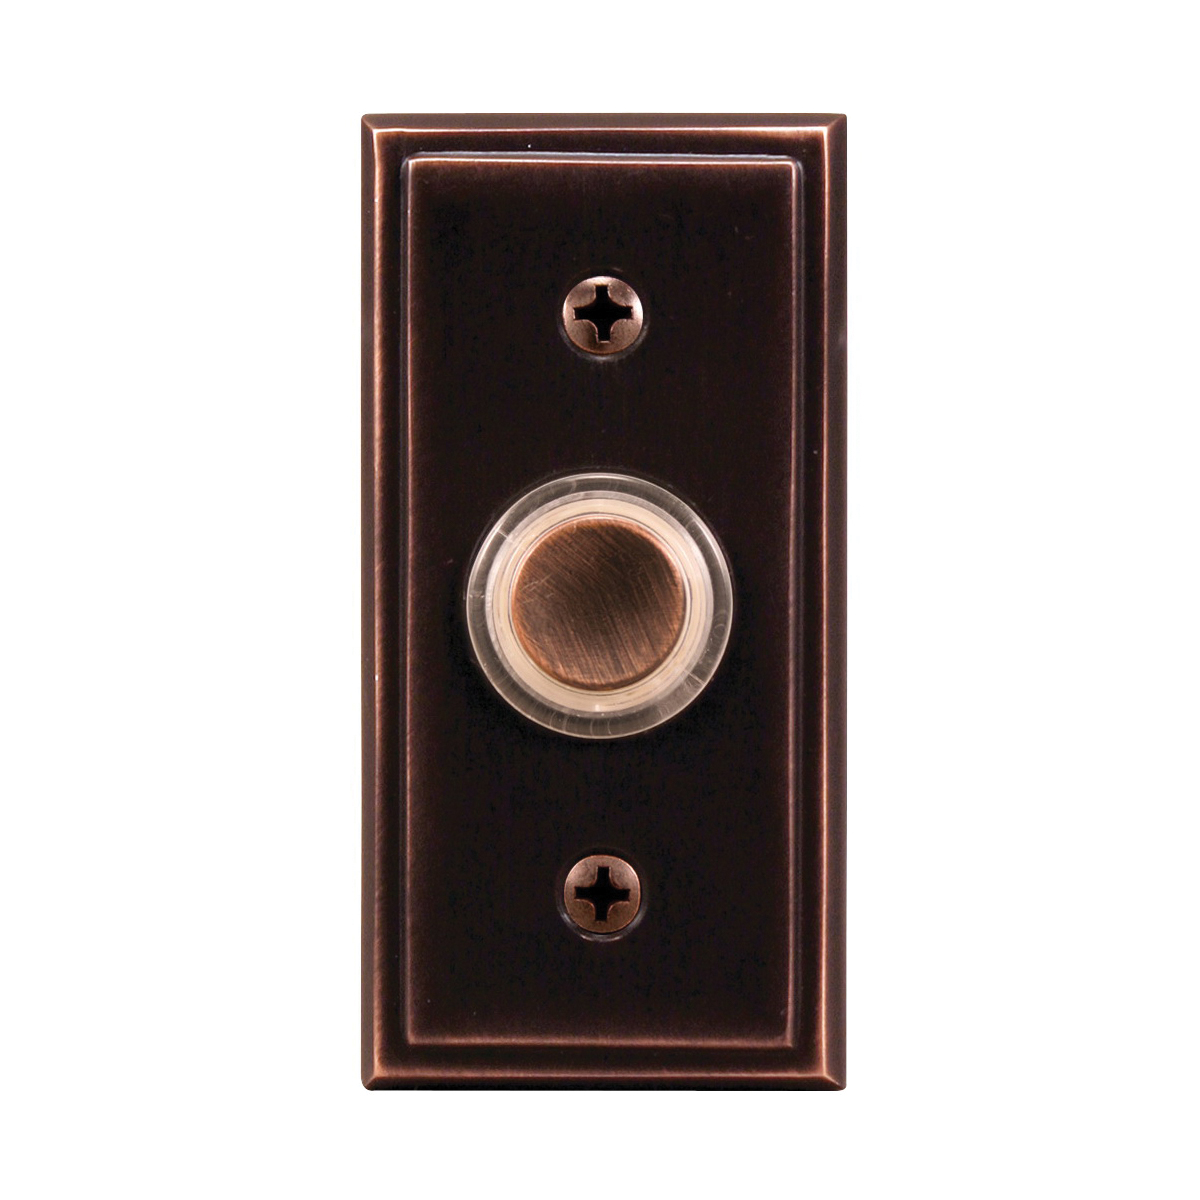 Picture of Heath Zenith SL-716-00 Pushbutton, Wired, Metal, Oil-Rubbed Bronze, Lighted